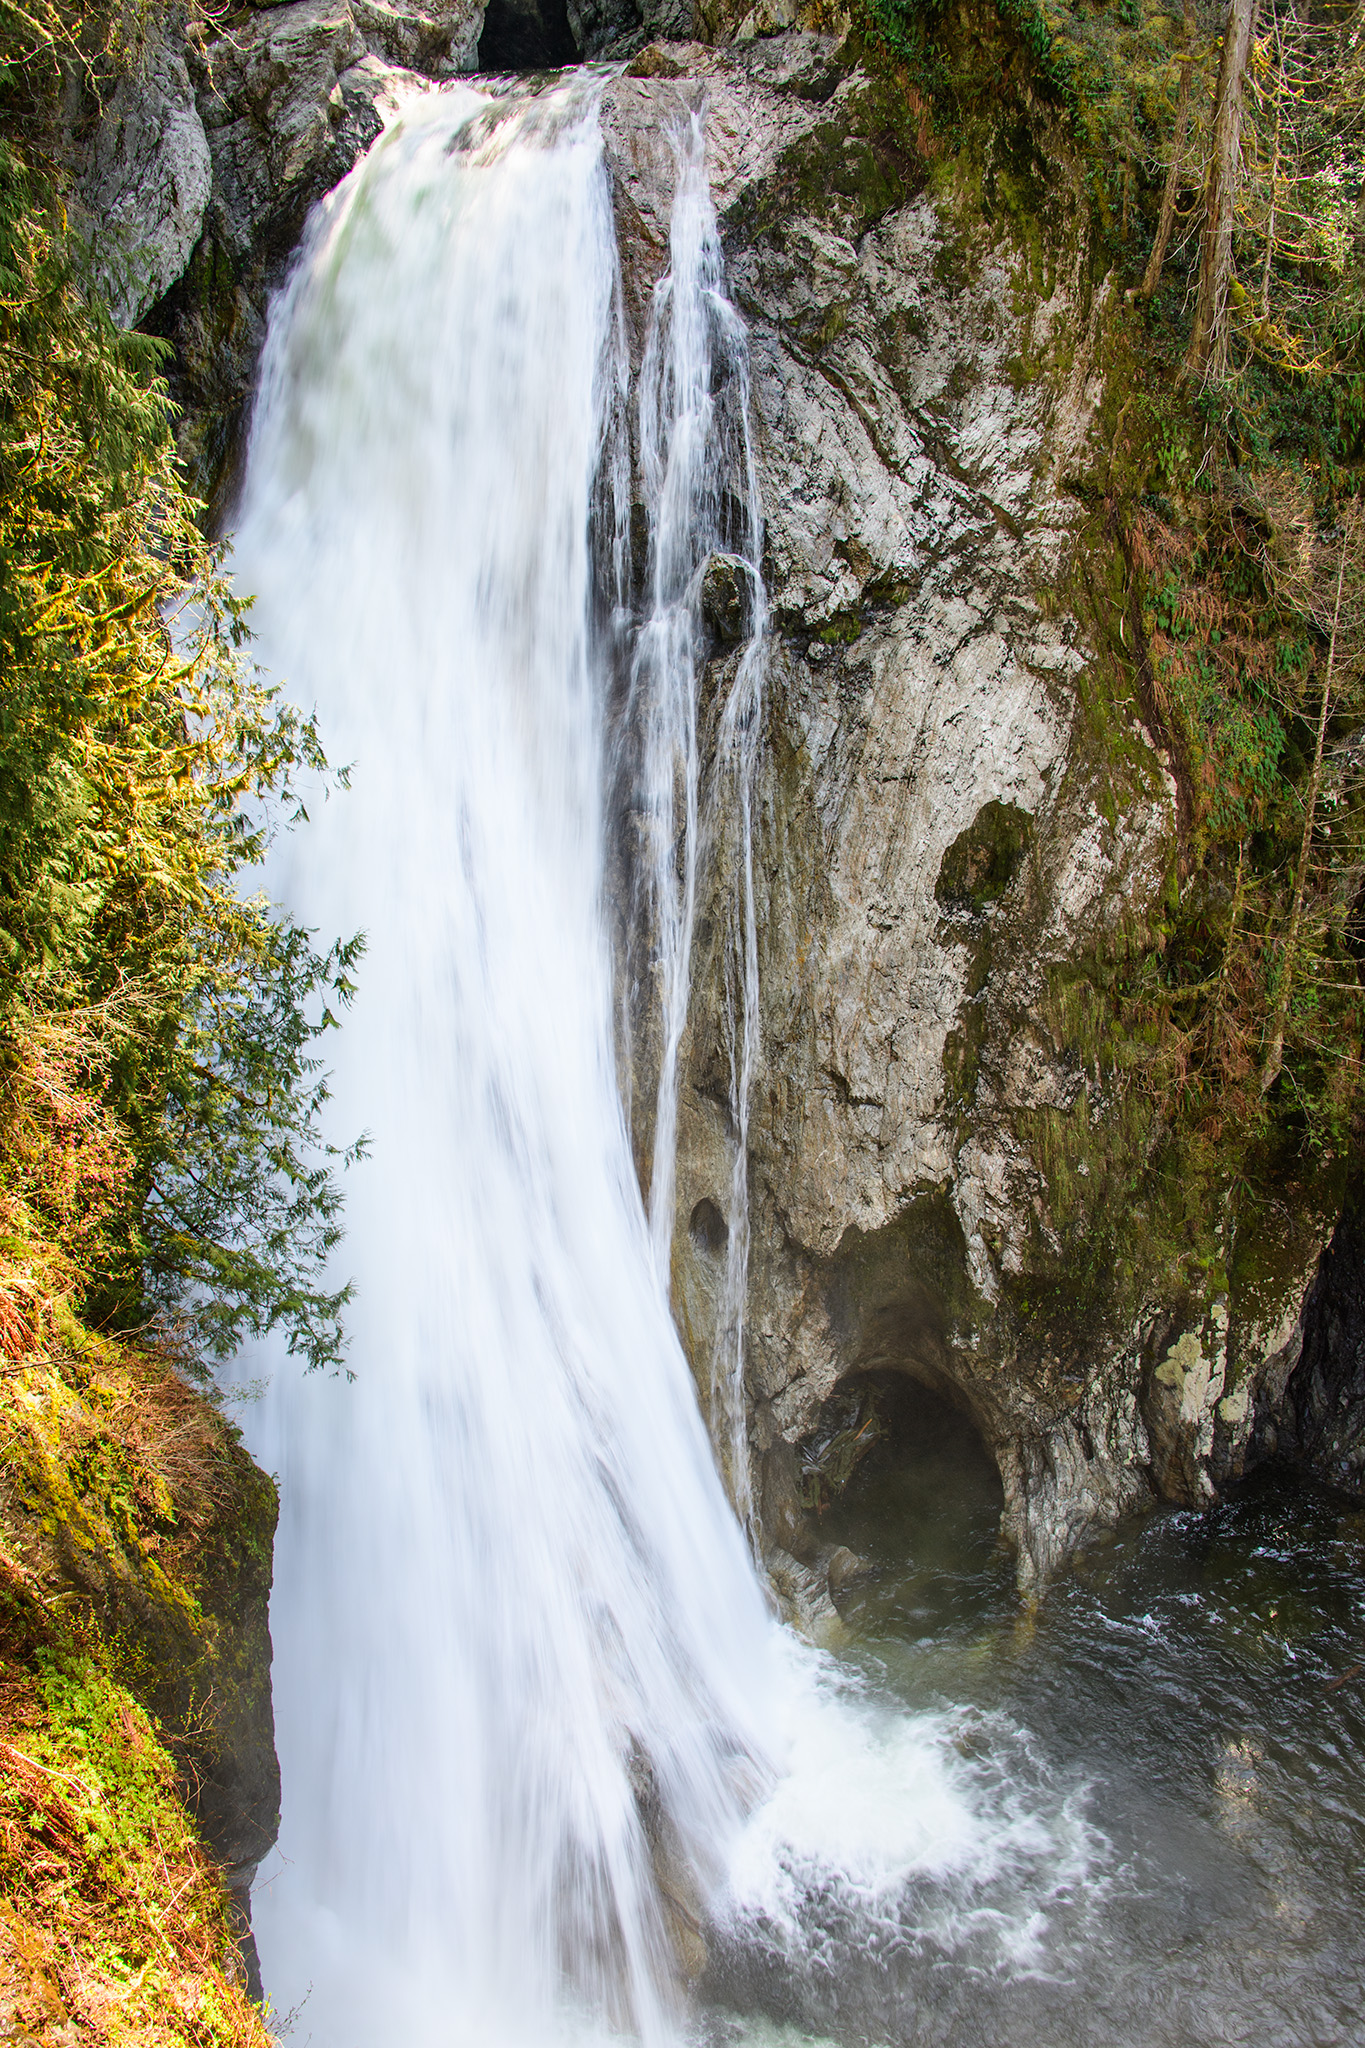 One of the Twin Falls at Ollalie State Park